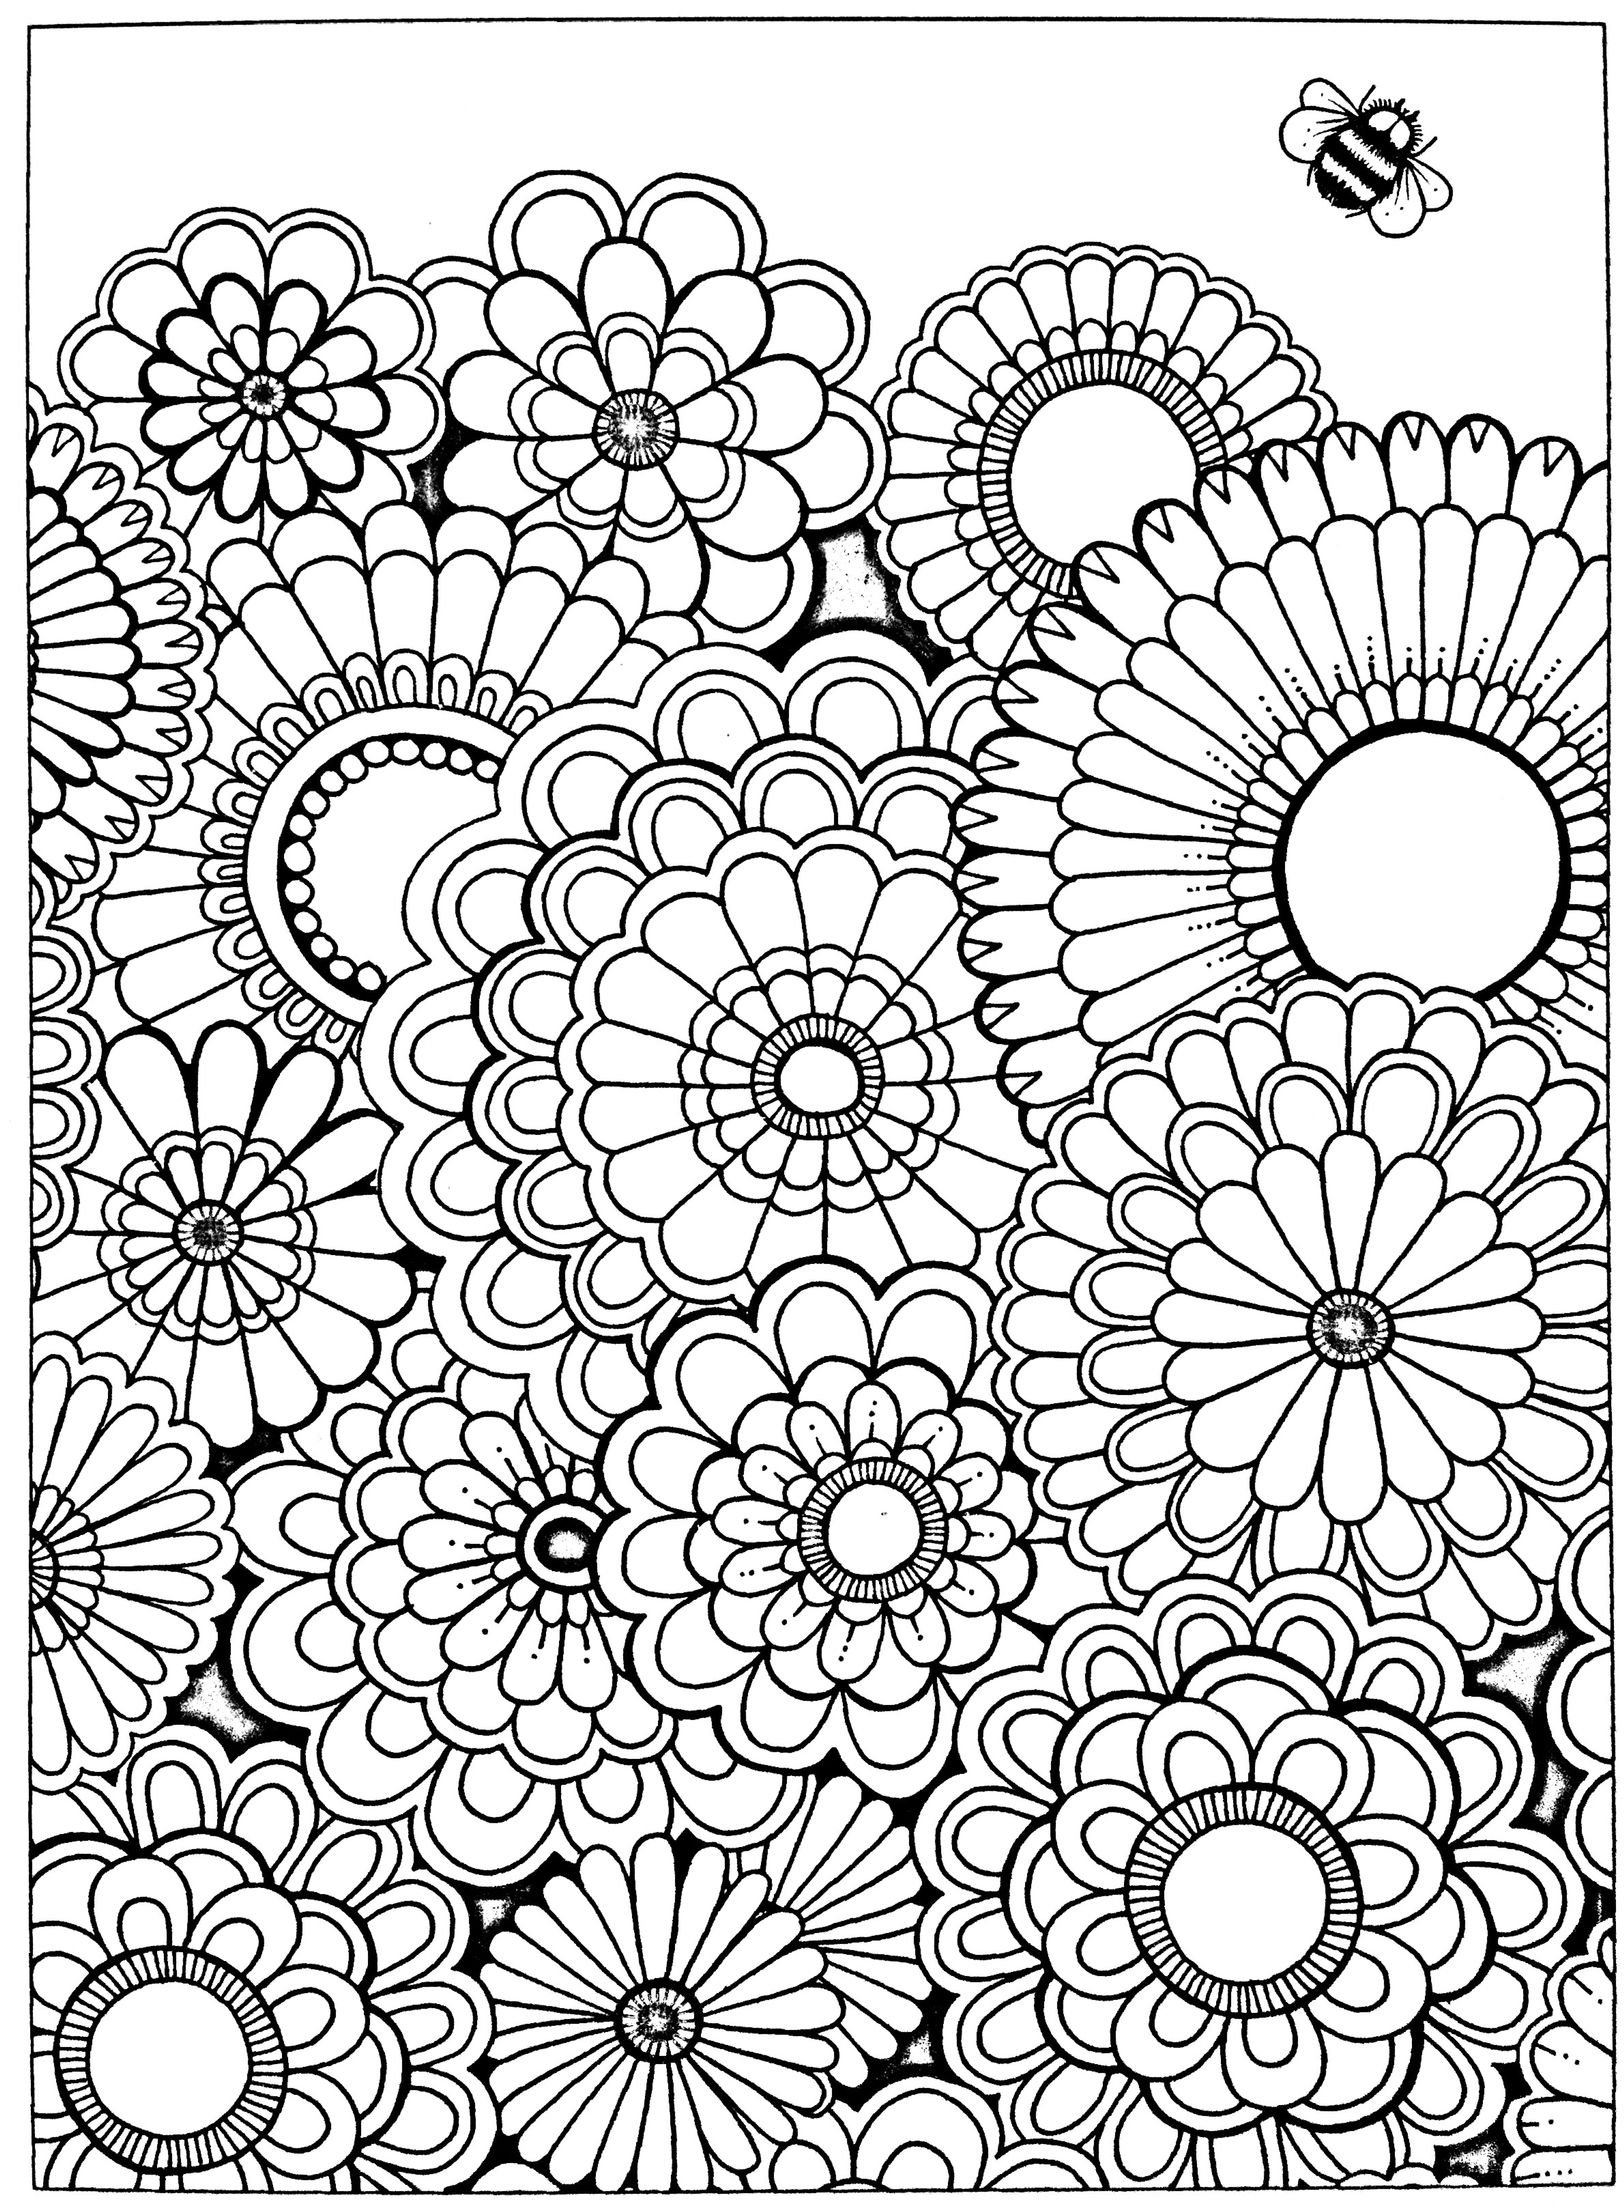 free printable secret garden coloring pages | Free adult coloring page Secret Garden | Coloring books ...